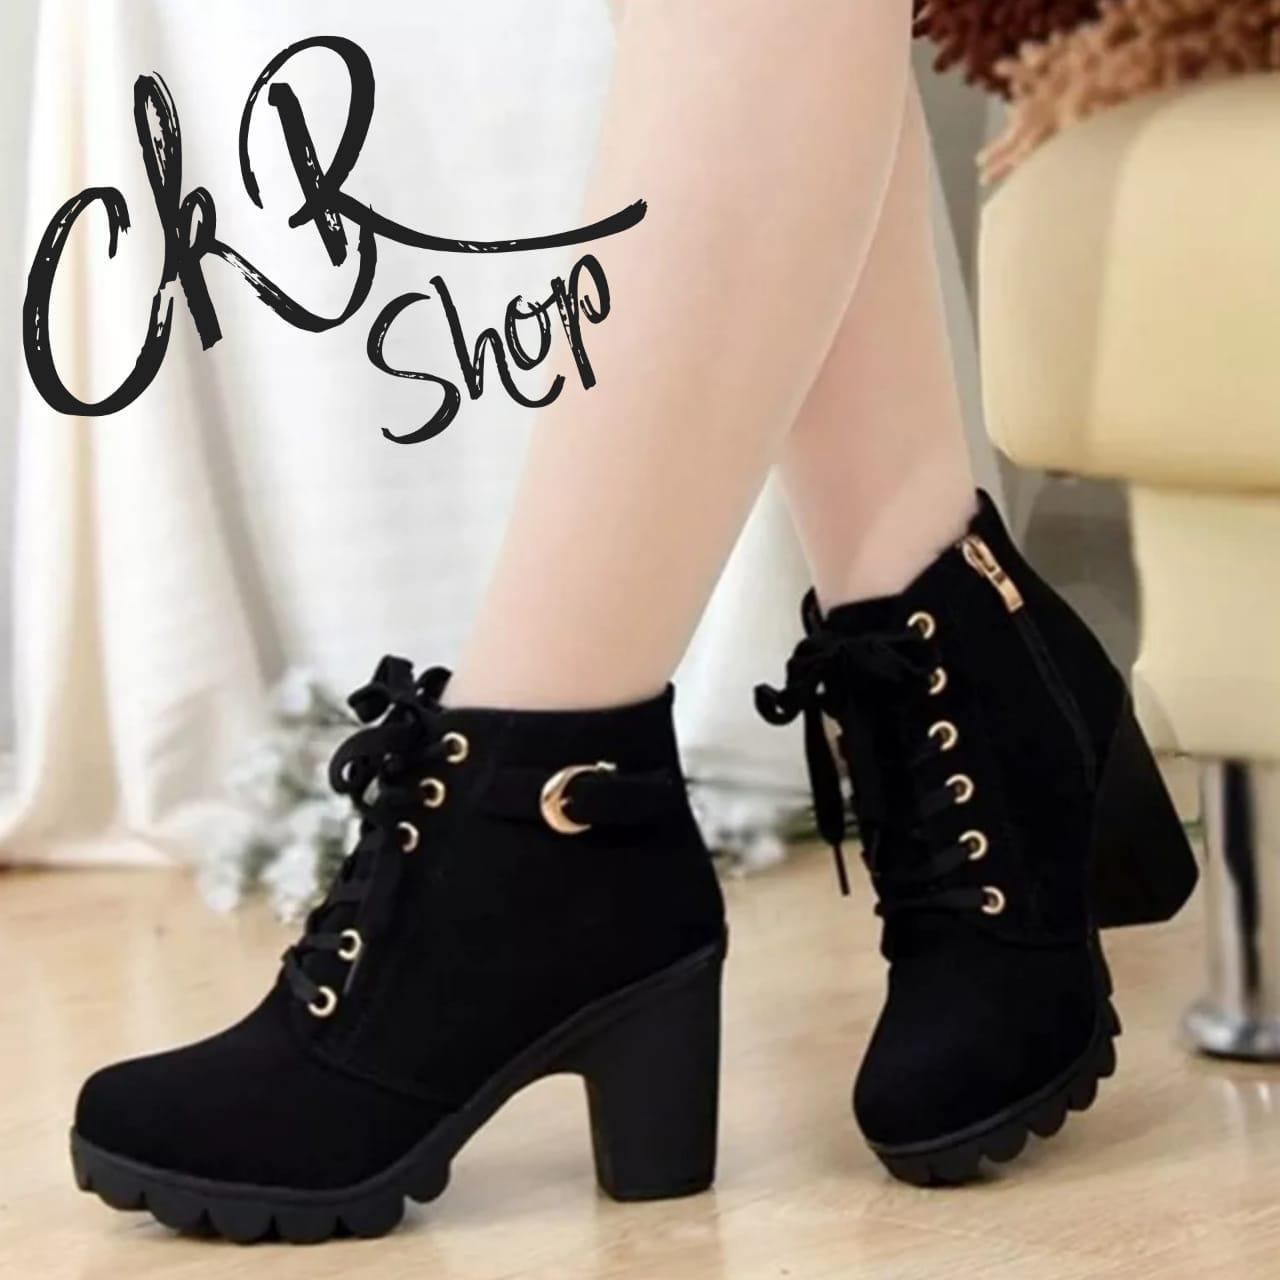 CkR Shop - Women Fashion Boots DN.061